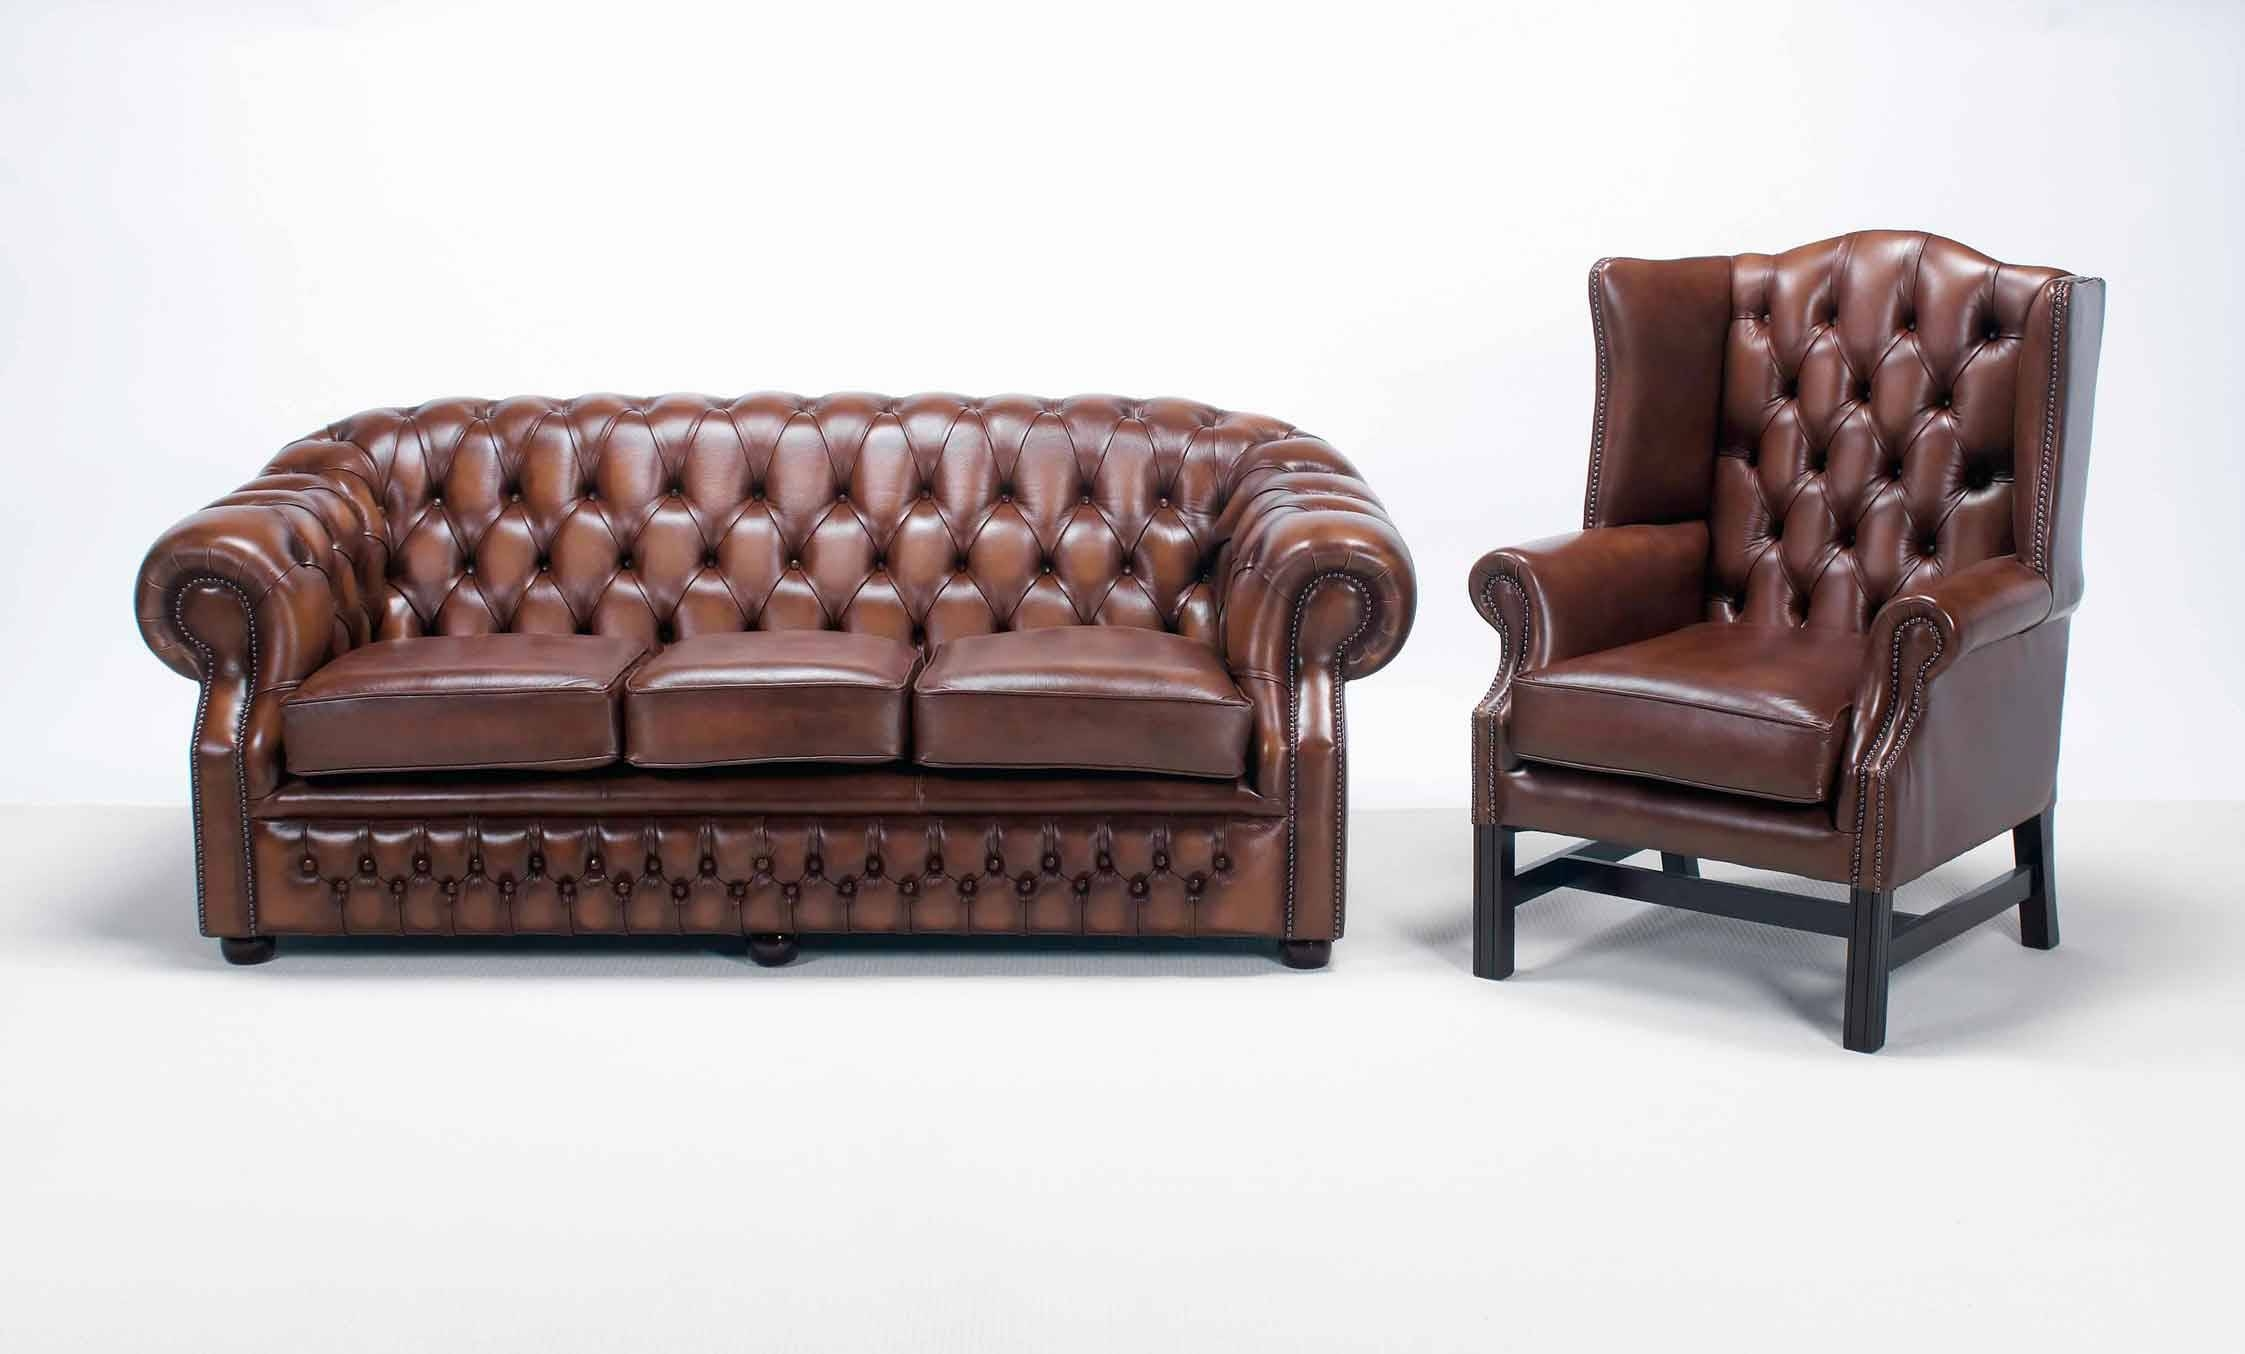 How To Identify A Real Chesterfield Sofa — Interior Home Design with Chesterfield Furniture (Image 25 of 30)